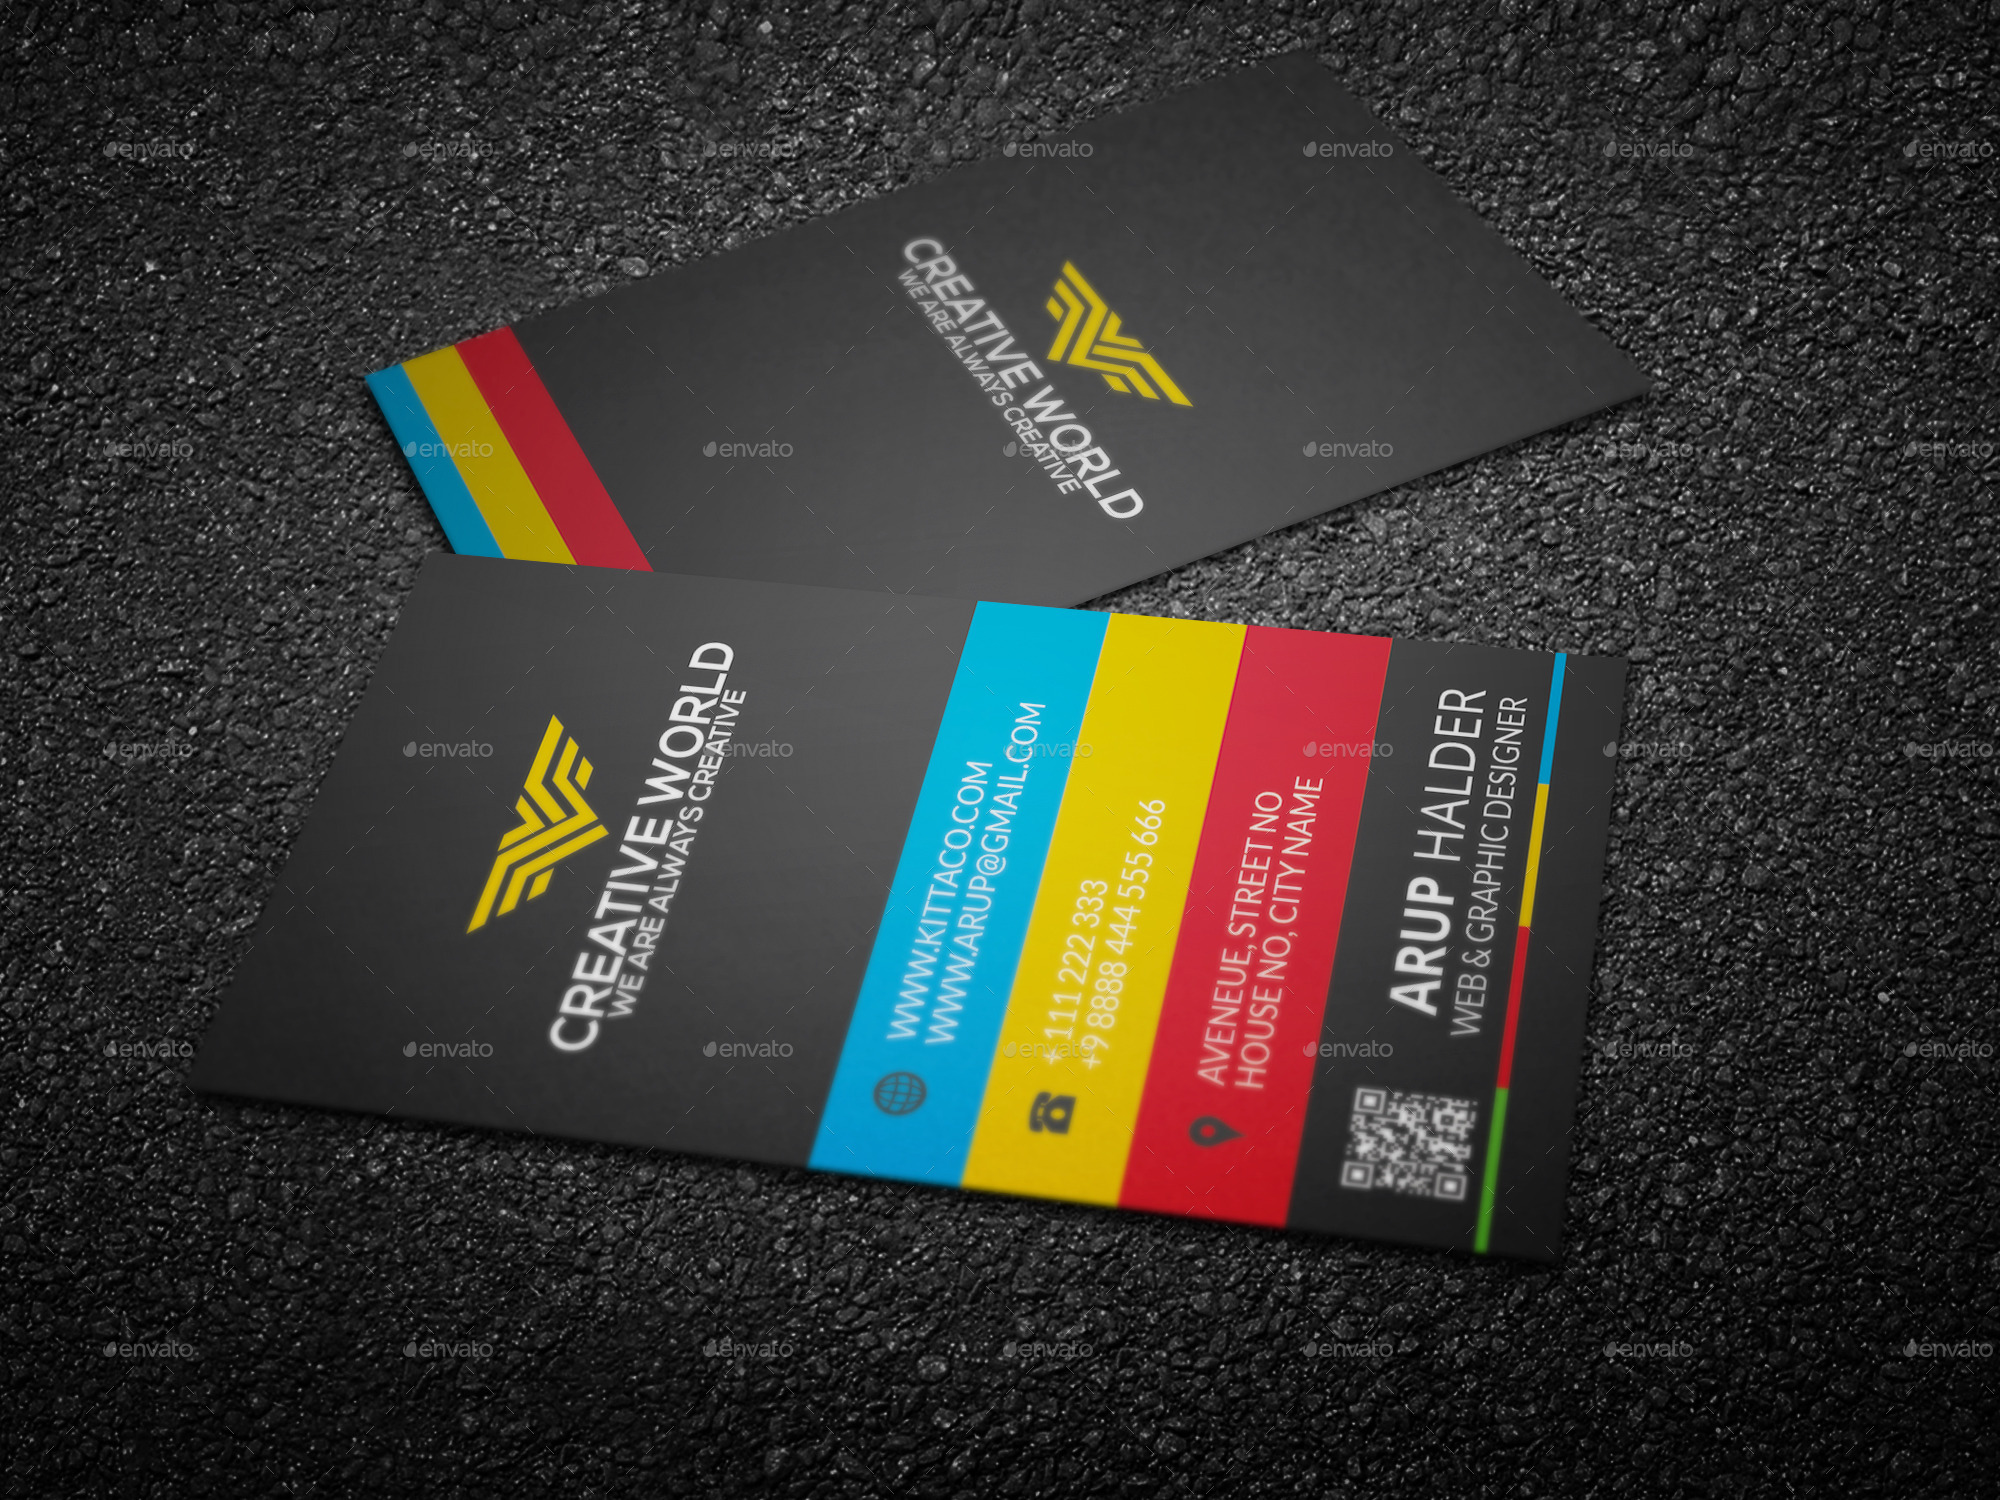 Business cards templates envato images card design and card template business card template envato images card design and card template colorful business card template by kittaco reheart Choice Image